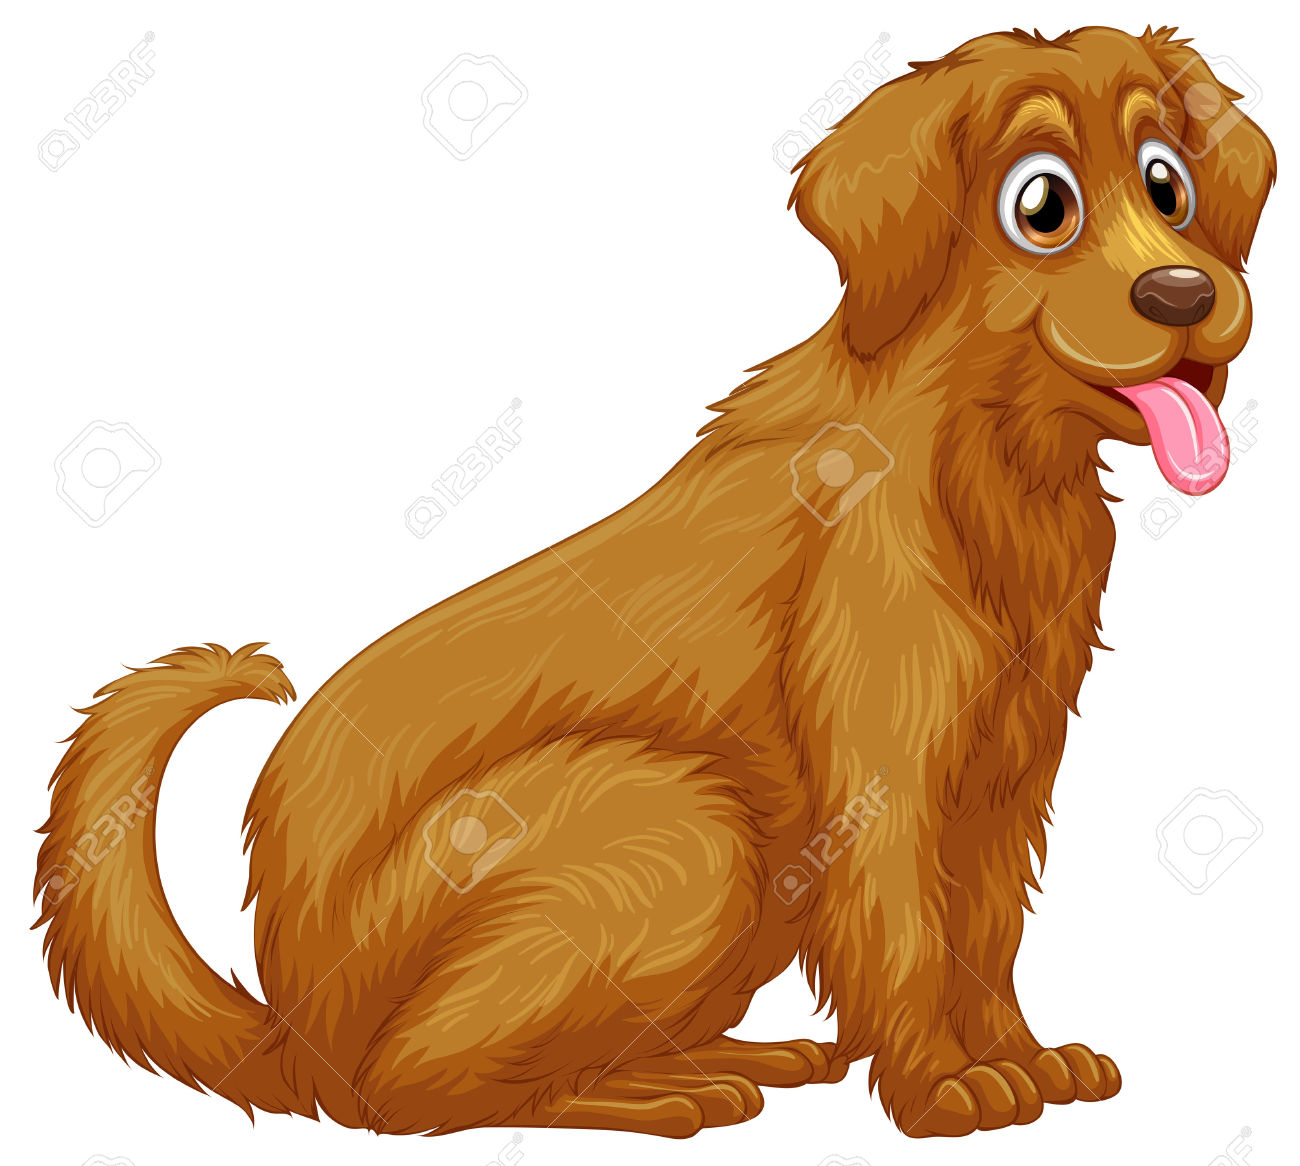 Golden Retriever clipart #8, Download drawings